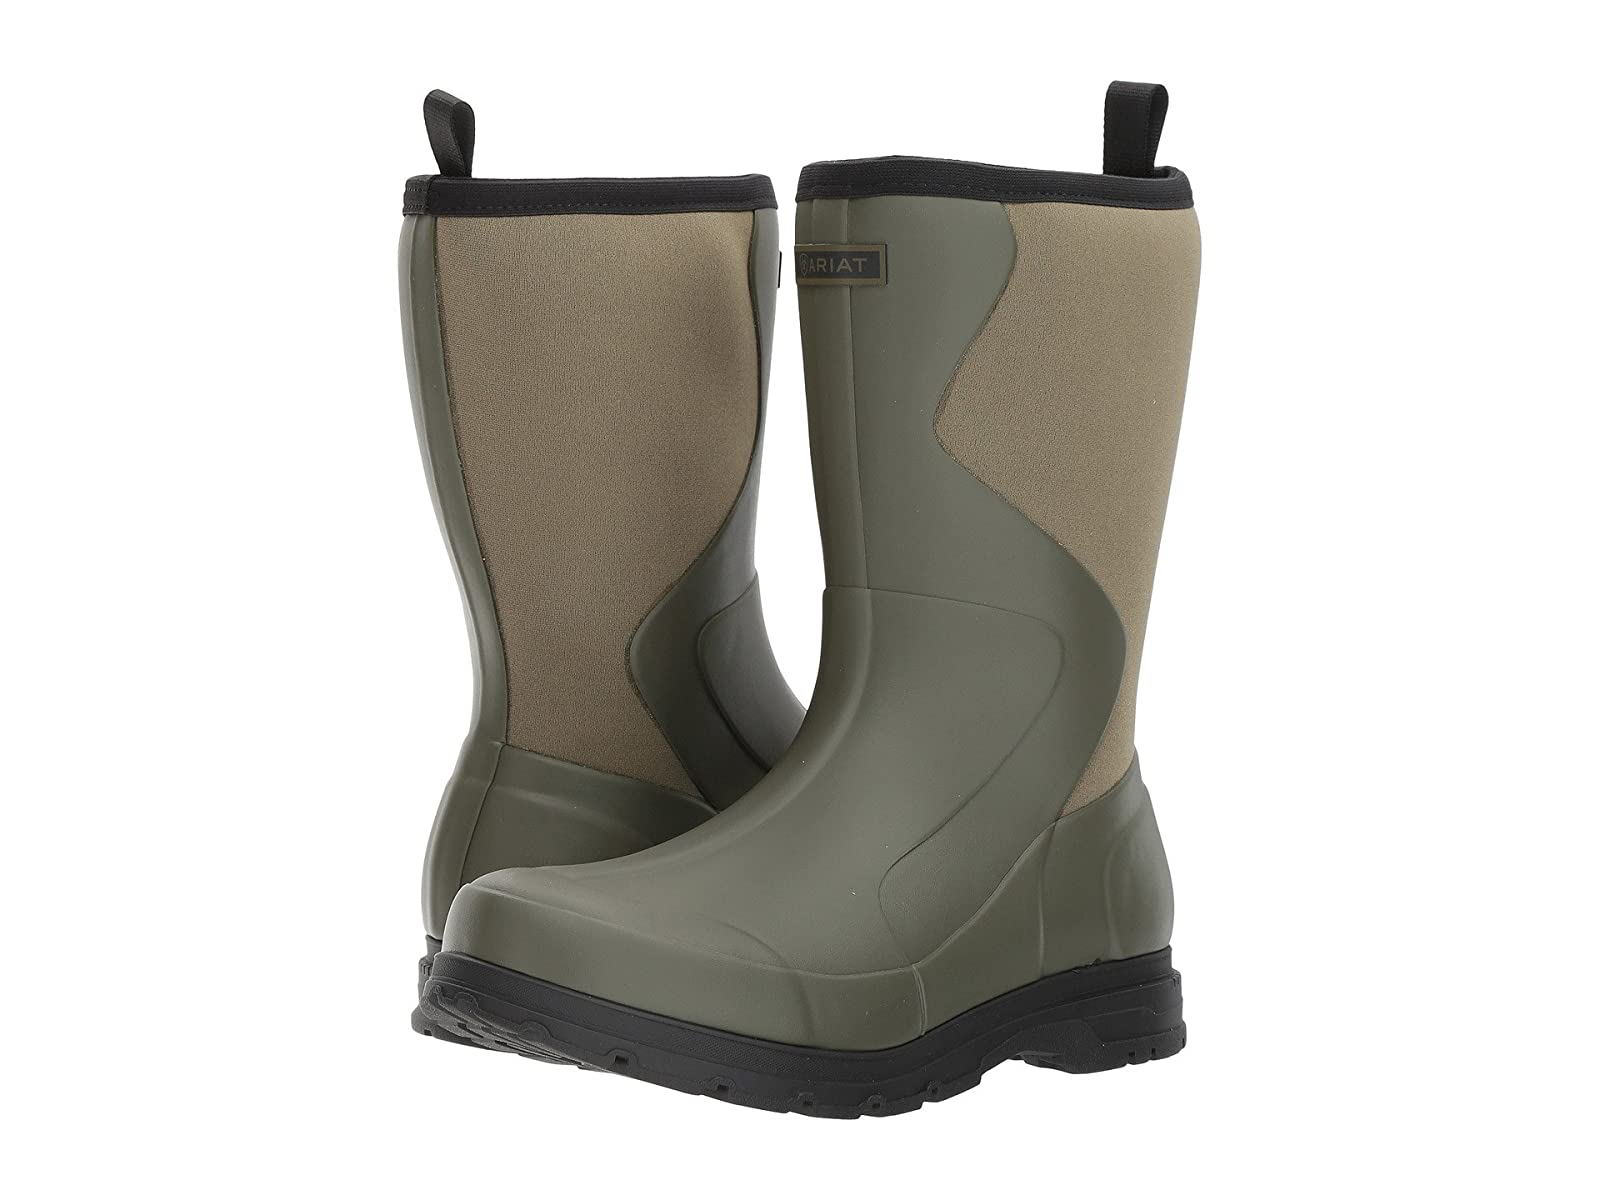 Ariat Springfield Rubber BootSelling fashionable and eye-catching shoes